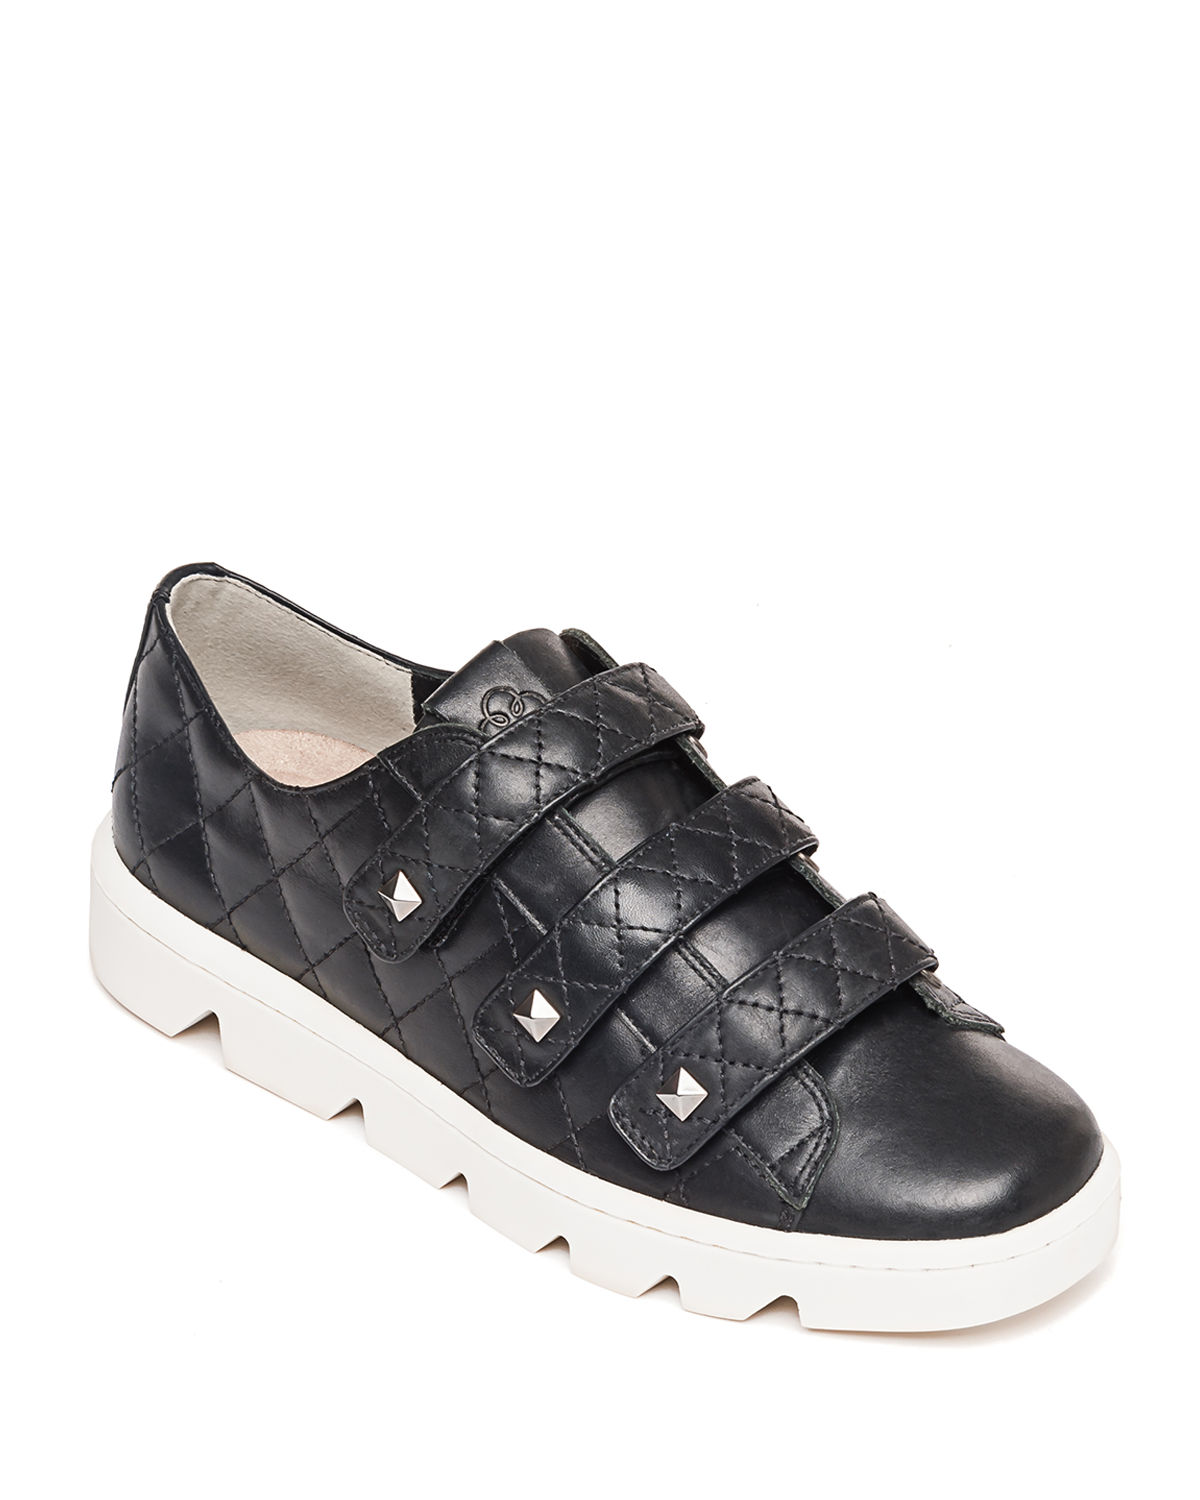 Dillon Quilted Stud Grip-Strap Sneakers